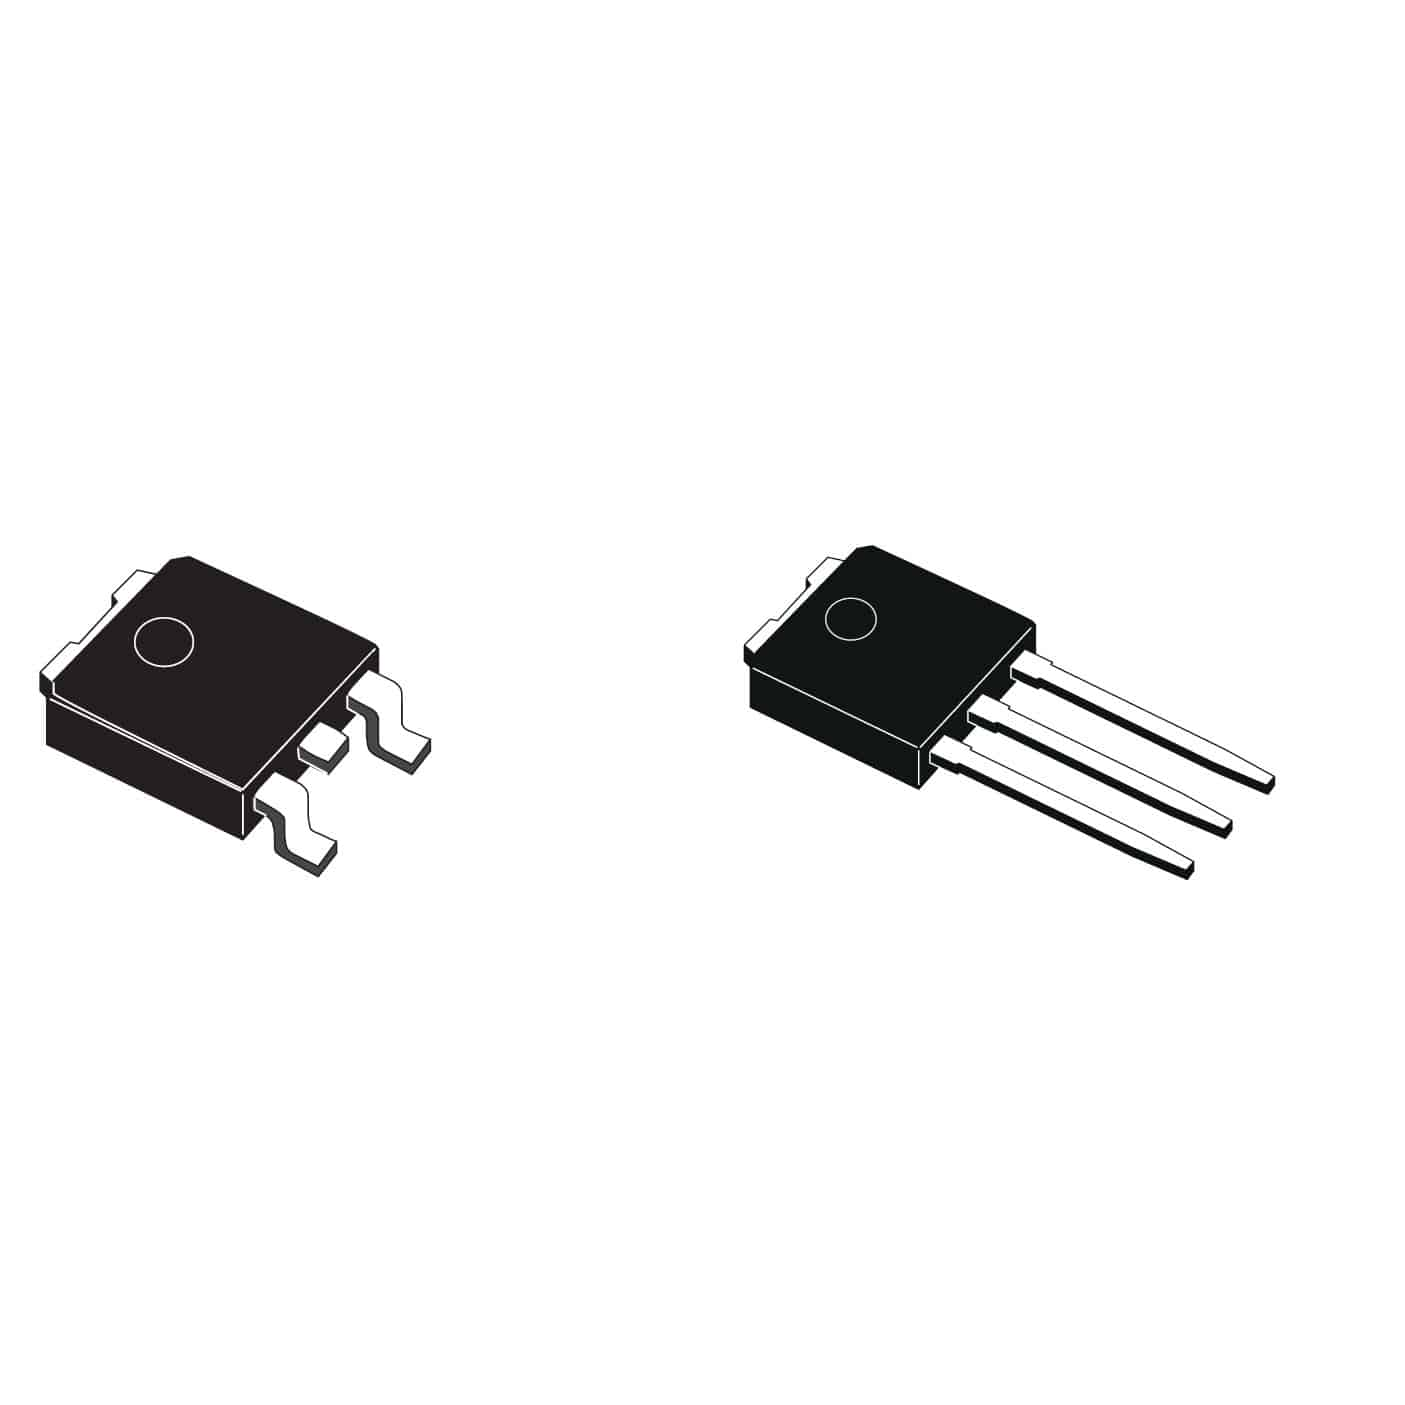 MOSFET transistor / power / for automotive applications - VND series